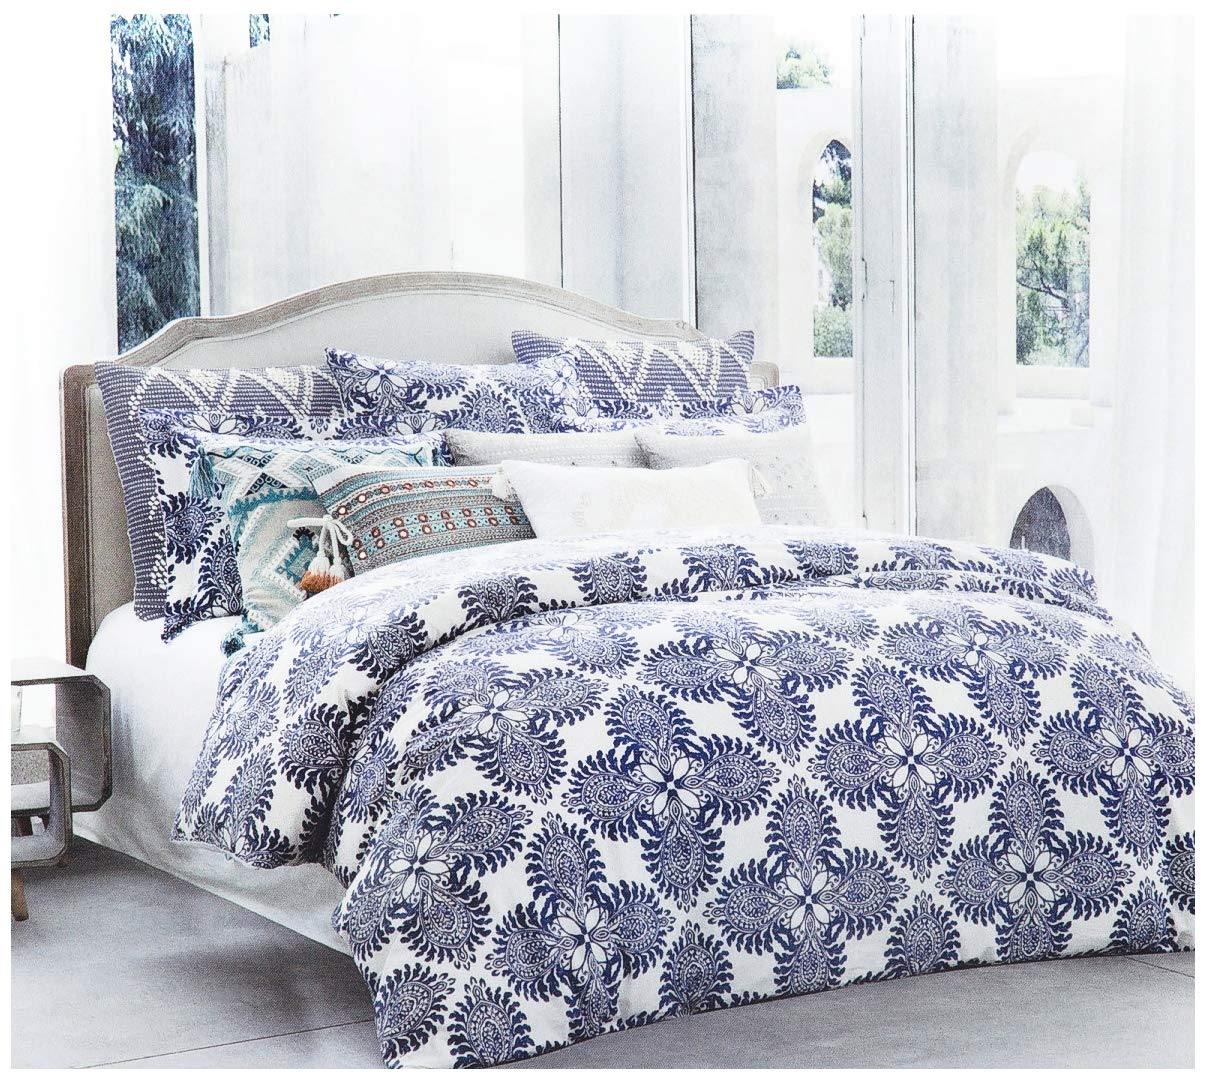 Quilt Covers Reversible Bedding Sets All Sizes Scroll Luxury Duvet